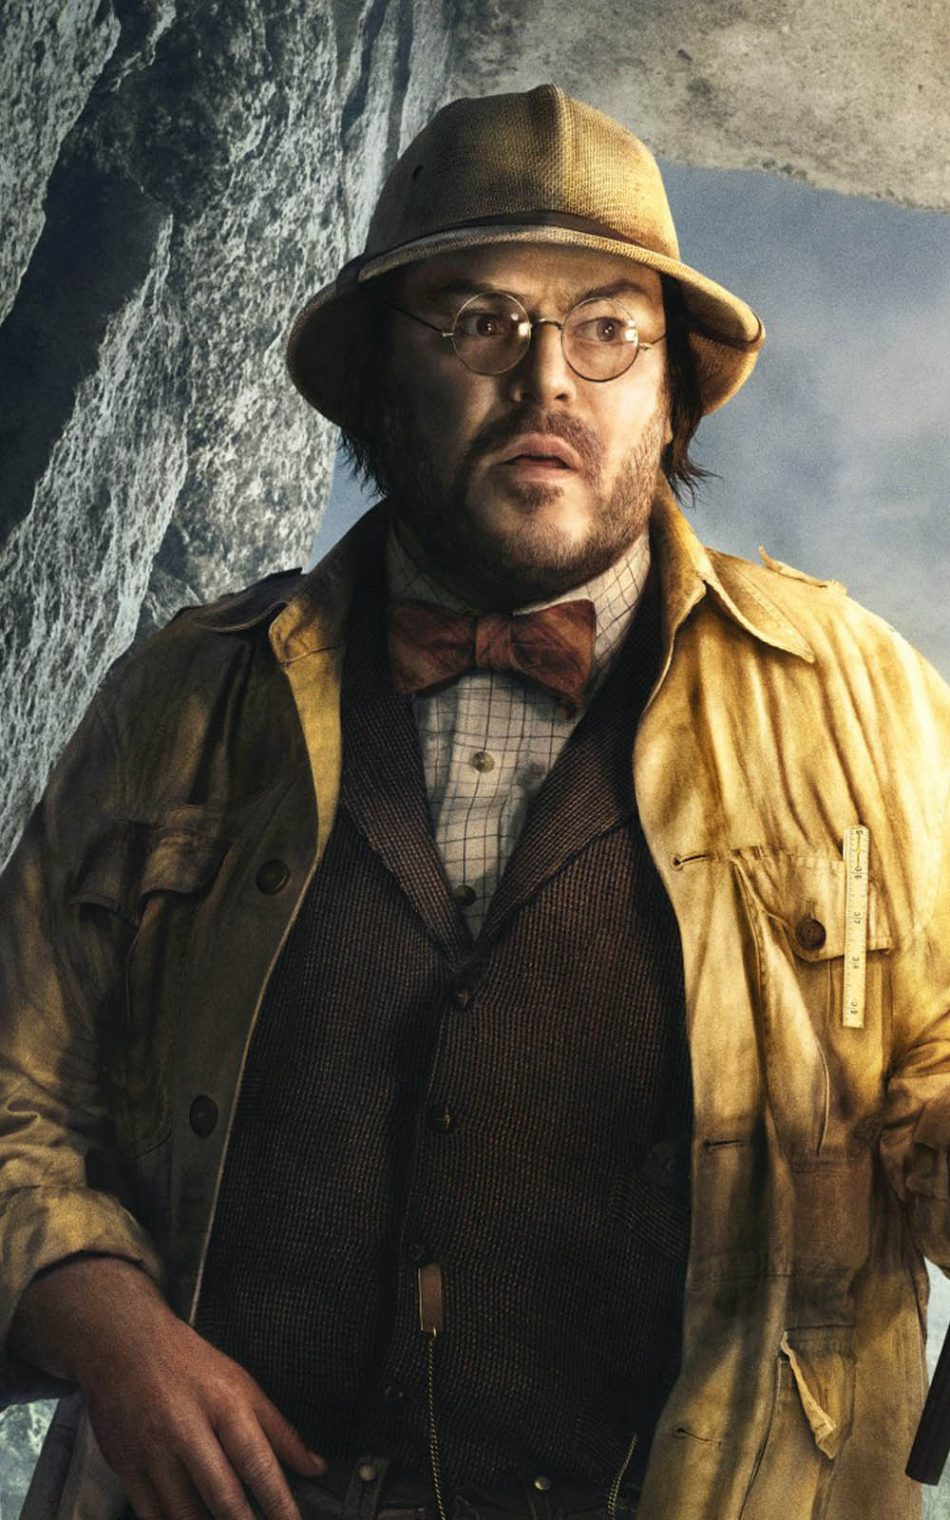 4k Anime Girl Wallpaper For Phones Download Jack Black In Jumanji Welcome To The Jungle Free